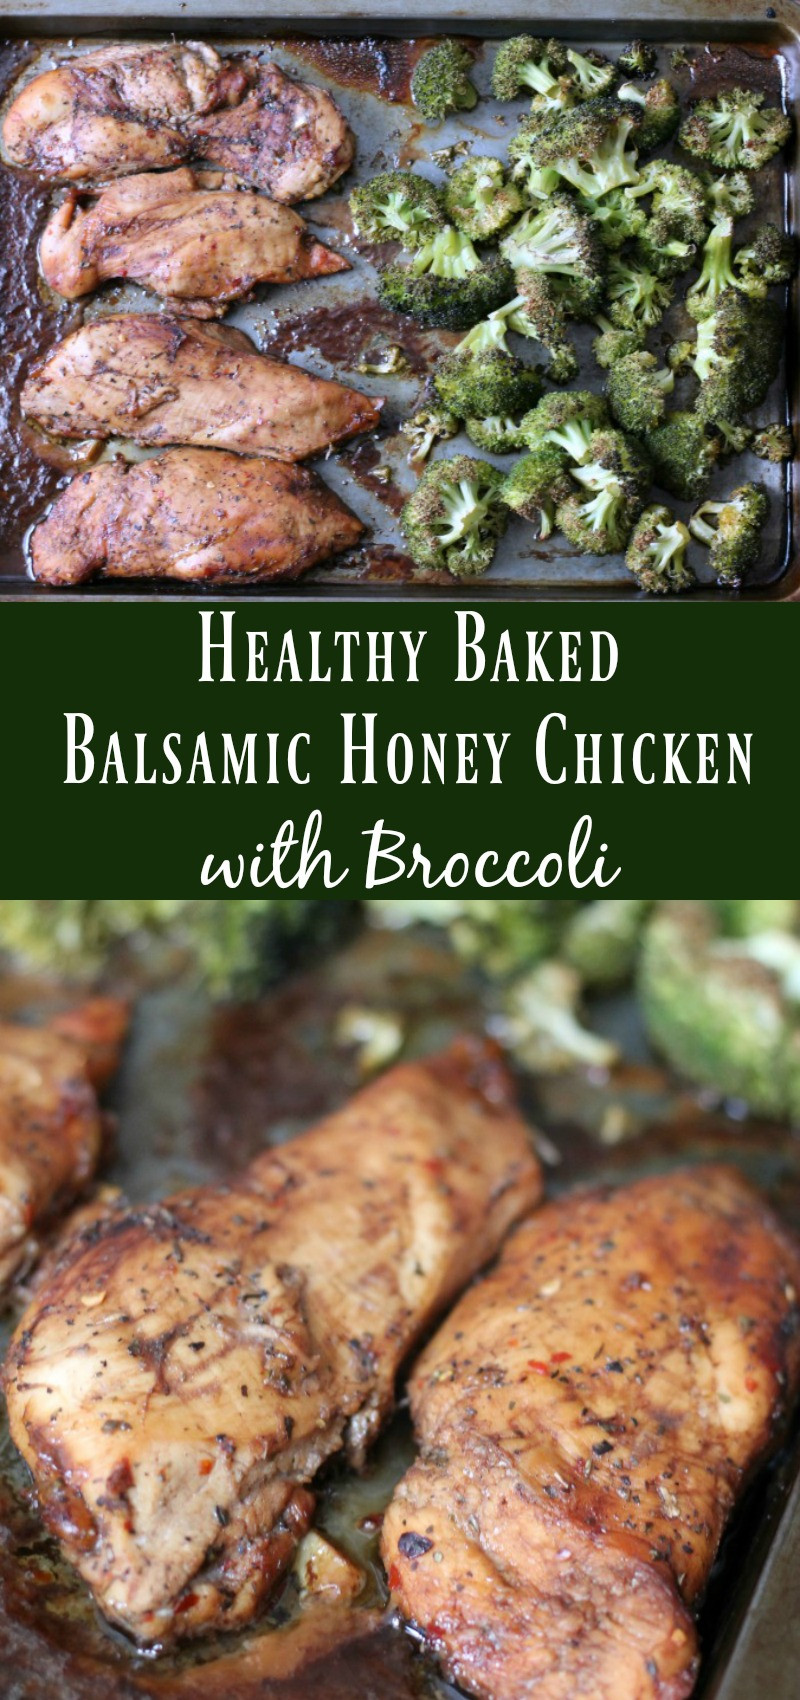 Healthy Baked Chicken Marinade  Healthy Baked Balsamic Honey Chicken with Broccoli